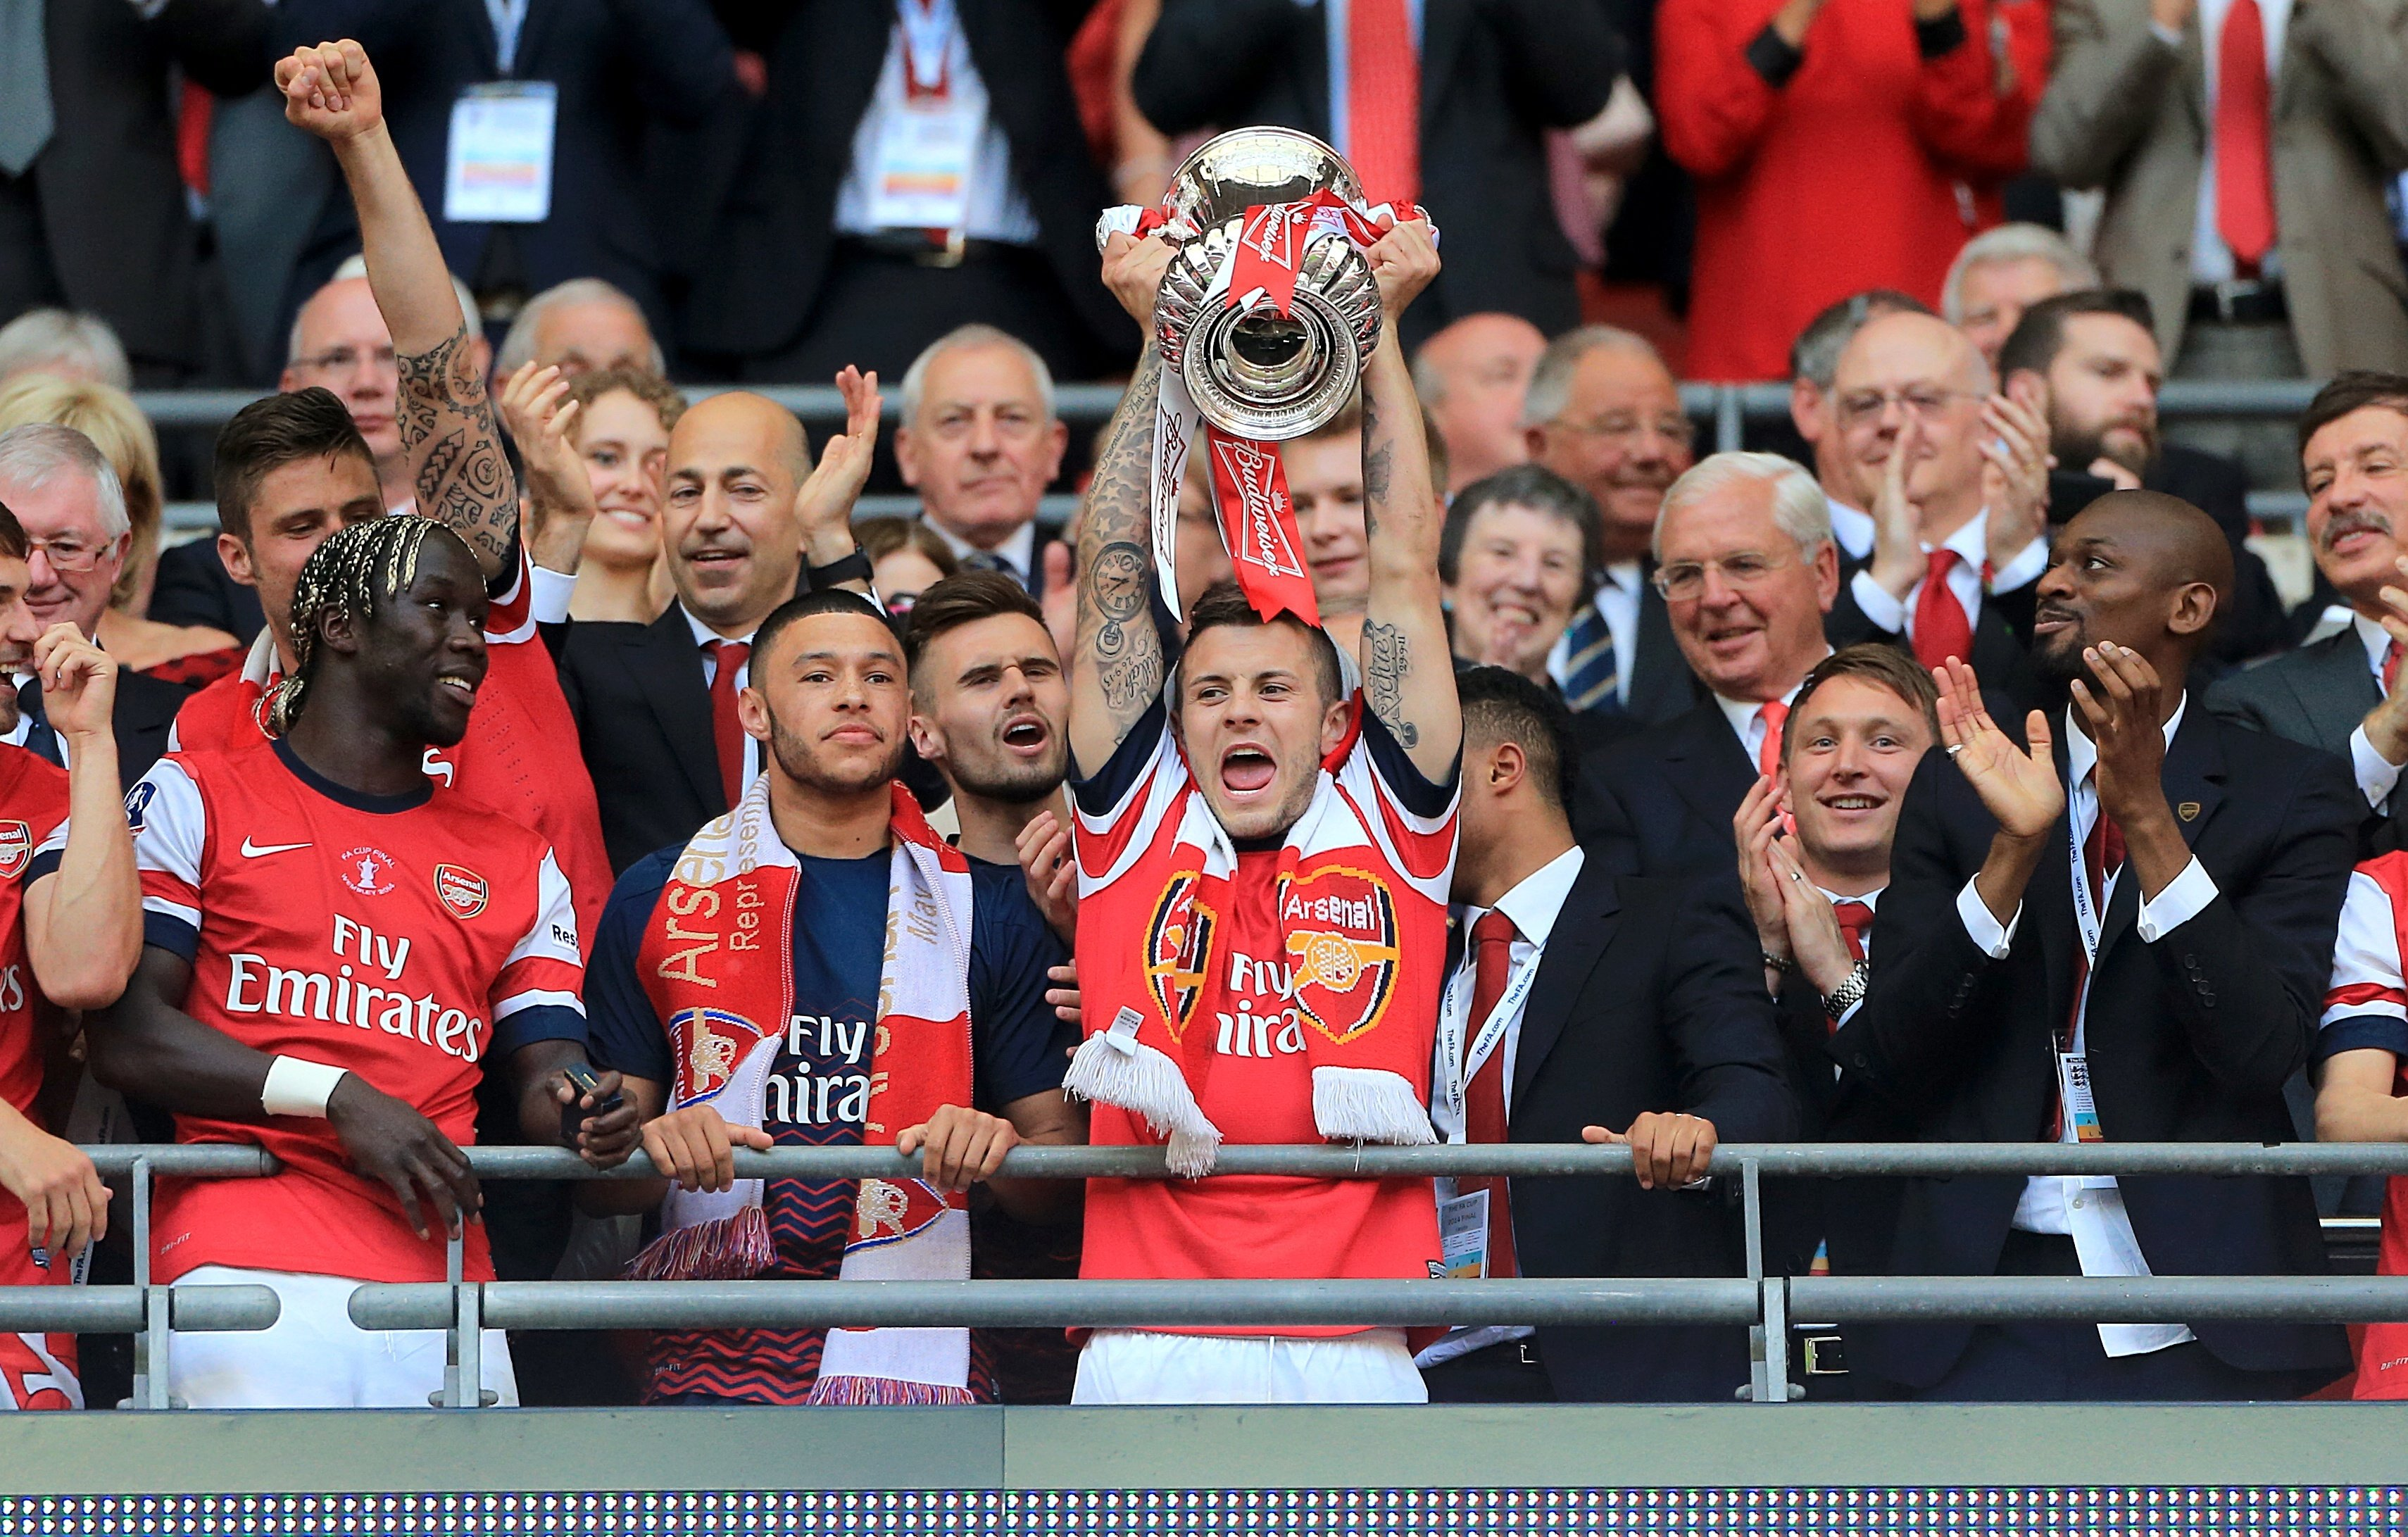 Jack Wilshere relishing chance to experience FA Cup again